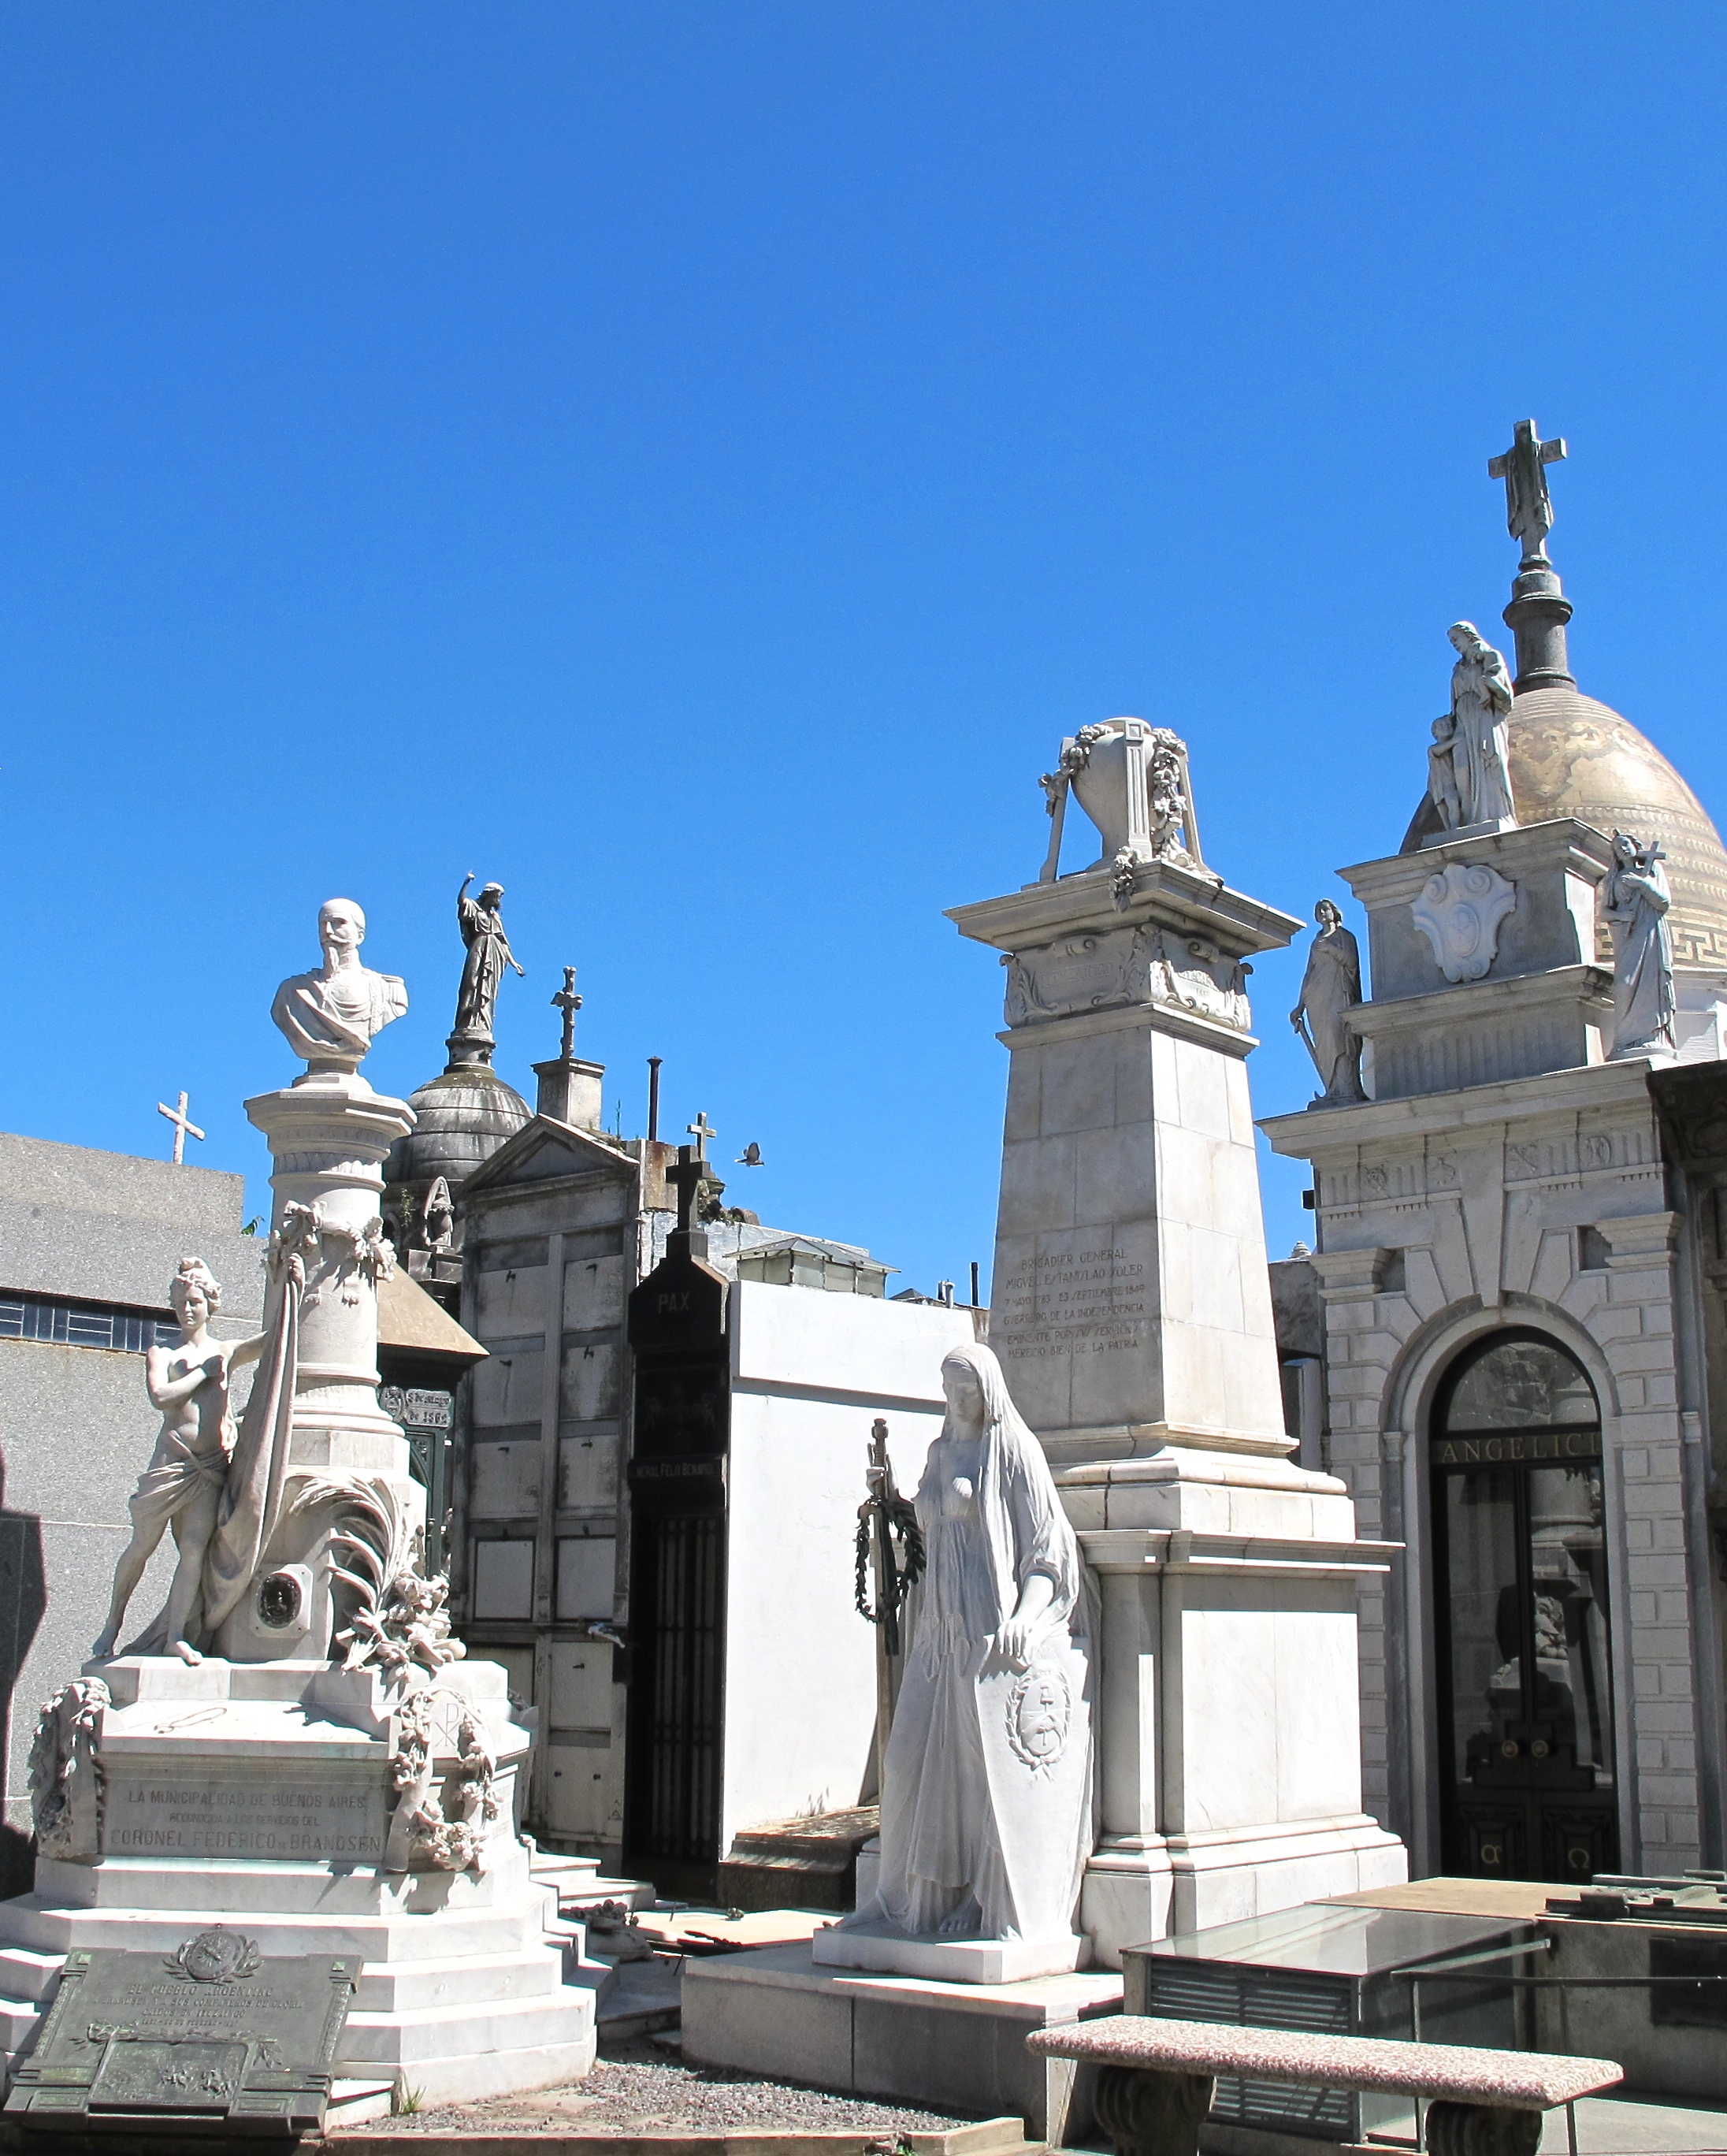 One of the most memorable high  lights from BA was the Recoleta Cemetery. A massive cemetery made up of breathtaking mausoleums housing some of the most famous, wealthy, and powerful Argentines.